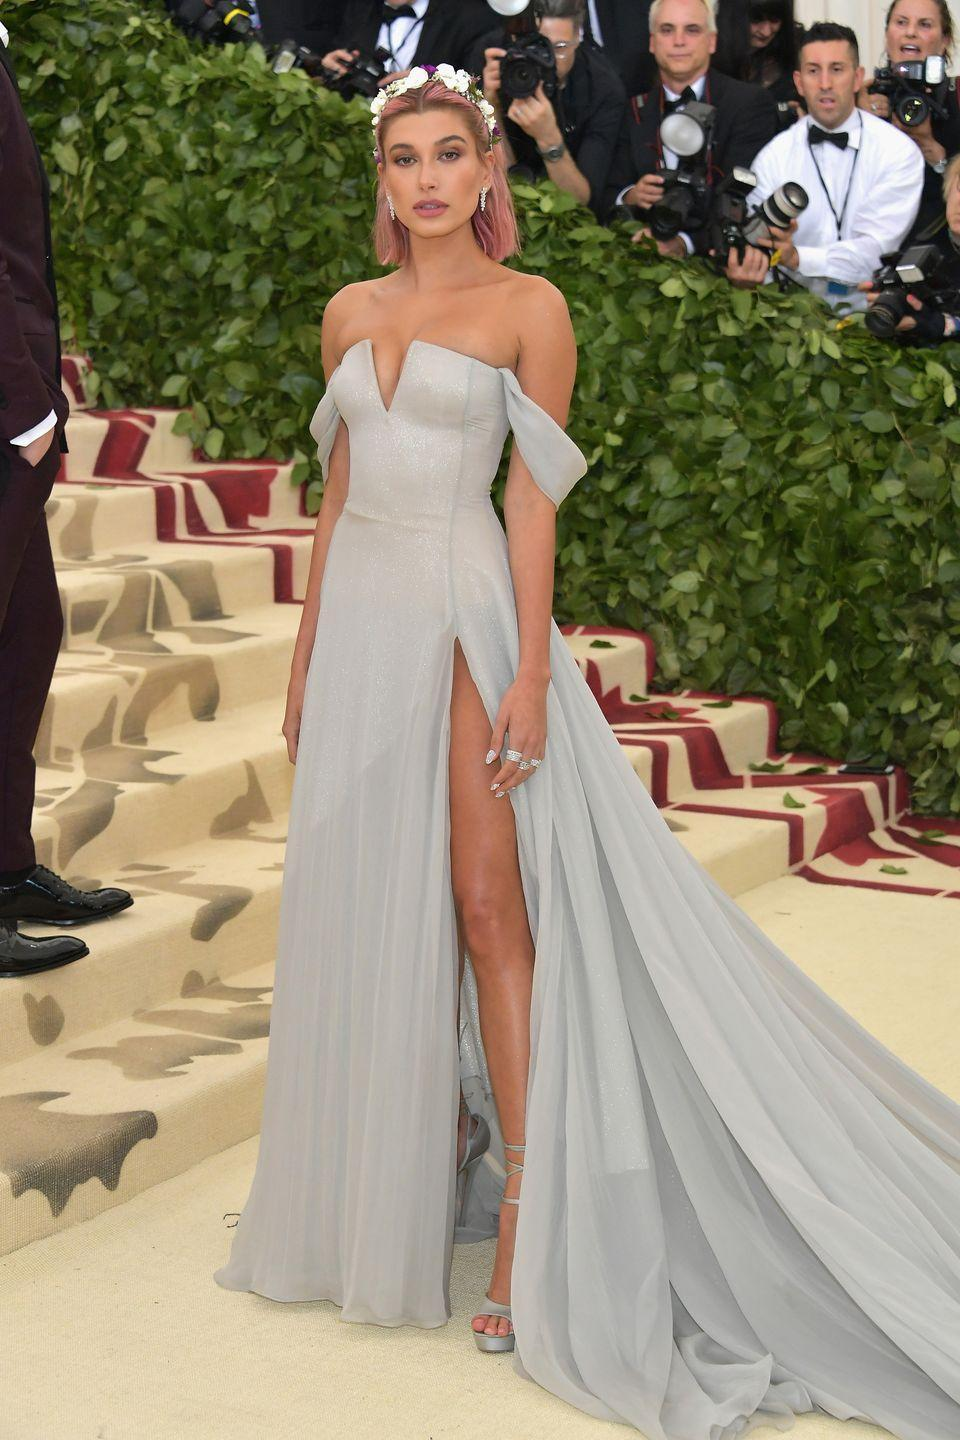 <p>American model Hailey Bieber channeled Princess Aurora in an icy blue off-the-shoulder gown by Tommy Hilfiger at the 2018 Met Gala in New York.</p>